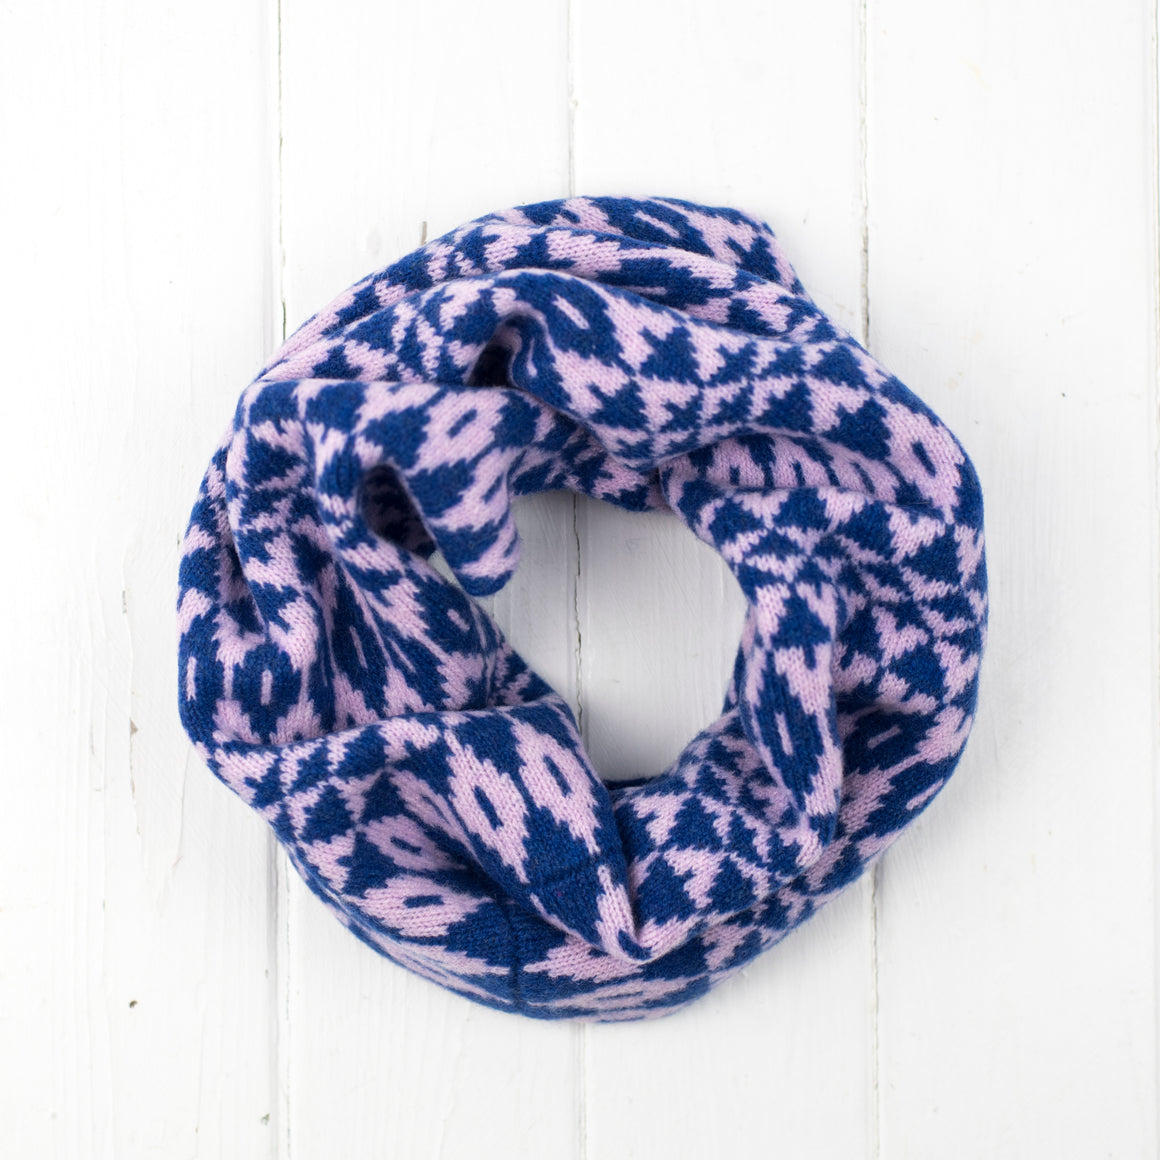 Mirror snood / cowl - pink and blue